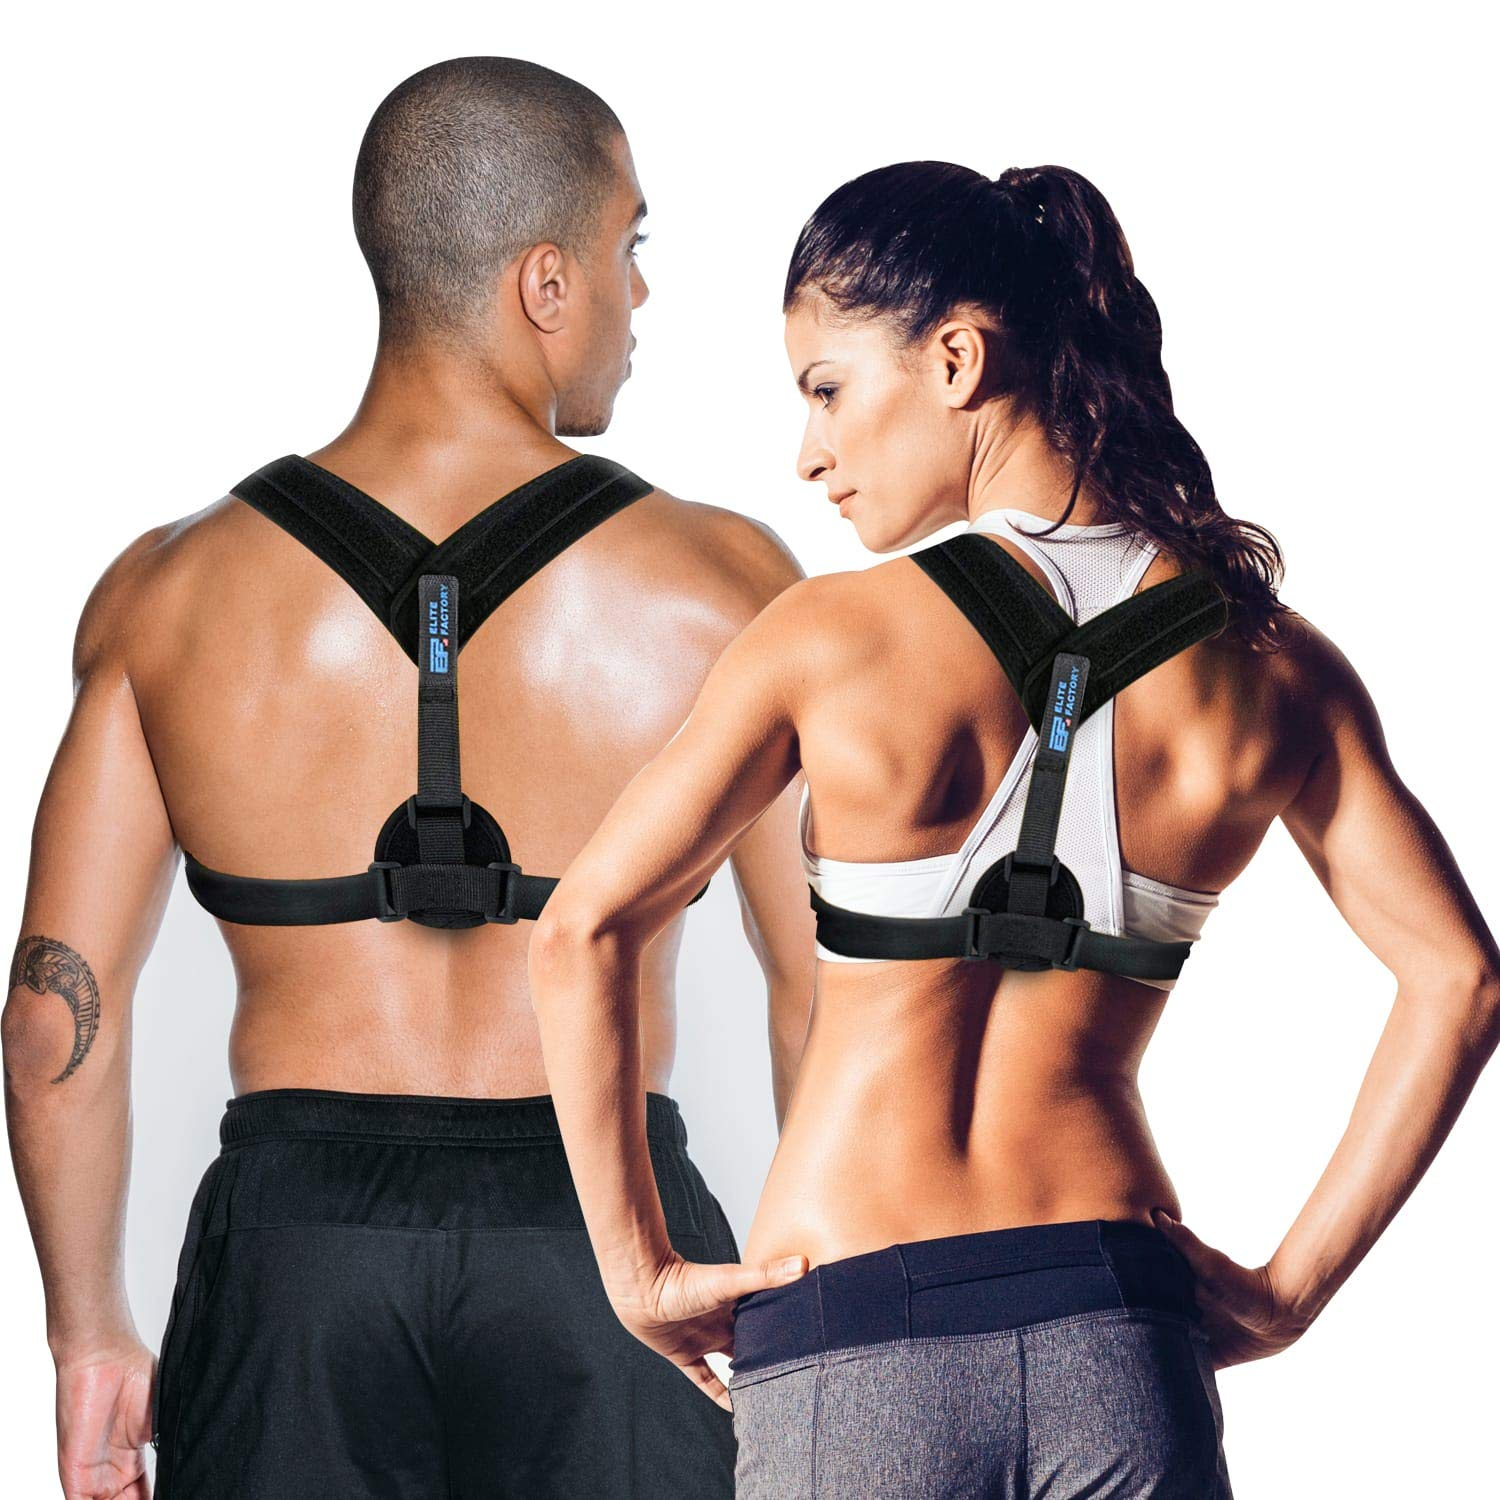 Posture Corrector for Women and Men | Back Brace for Lower Back Pain, Lumbar Support, Shoulder Straightener | Wear it Under Clothes or During Pregnancy | Prevent Scoliosis and Kyphosis | Body Wellness by Elite Factory